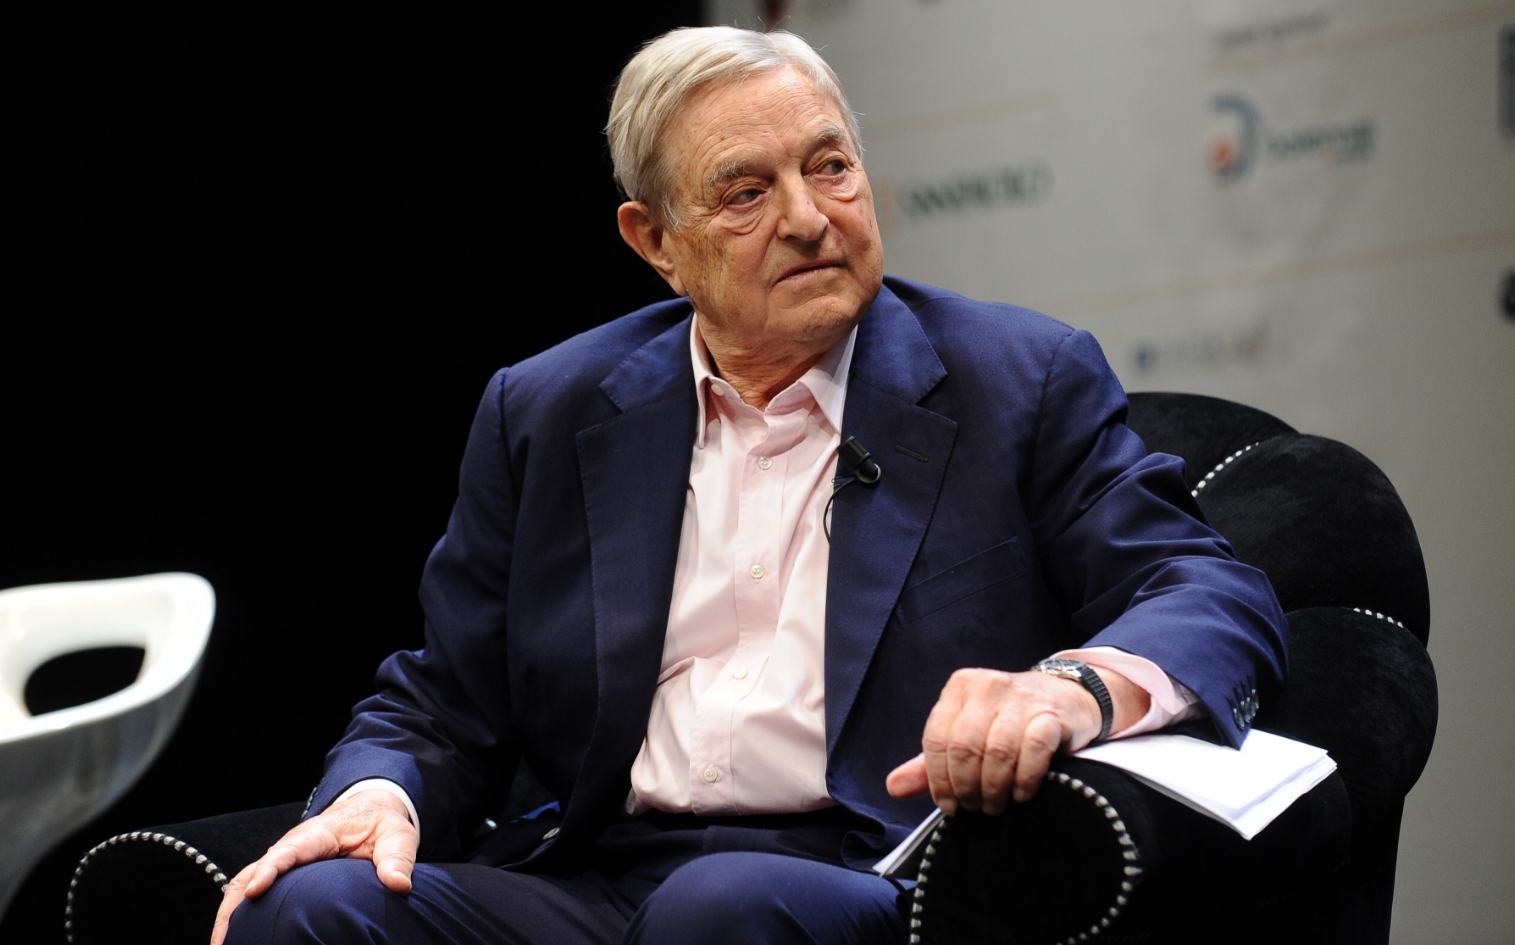 Image: Meddling globalist George Soros named as the puppet master behind student gun control push